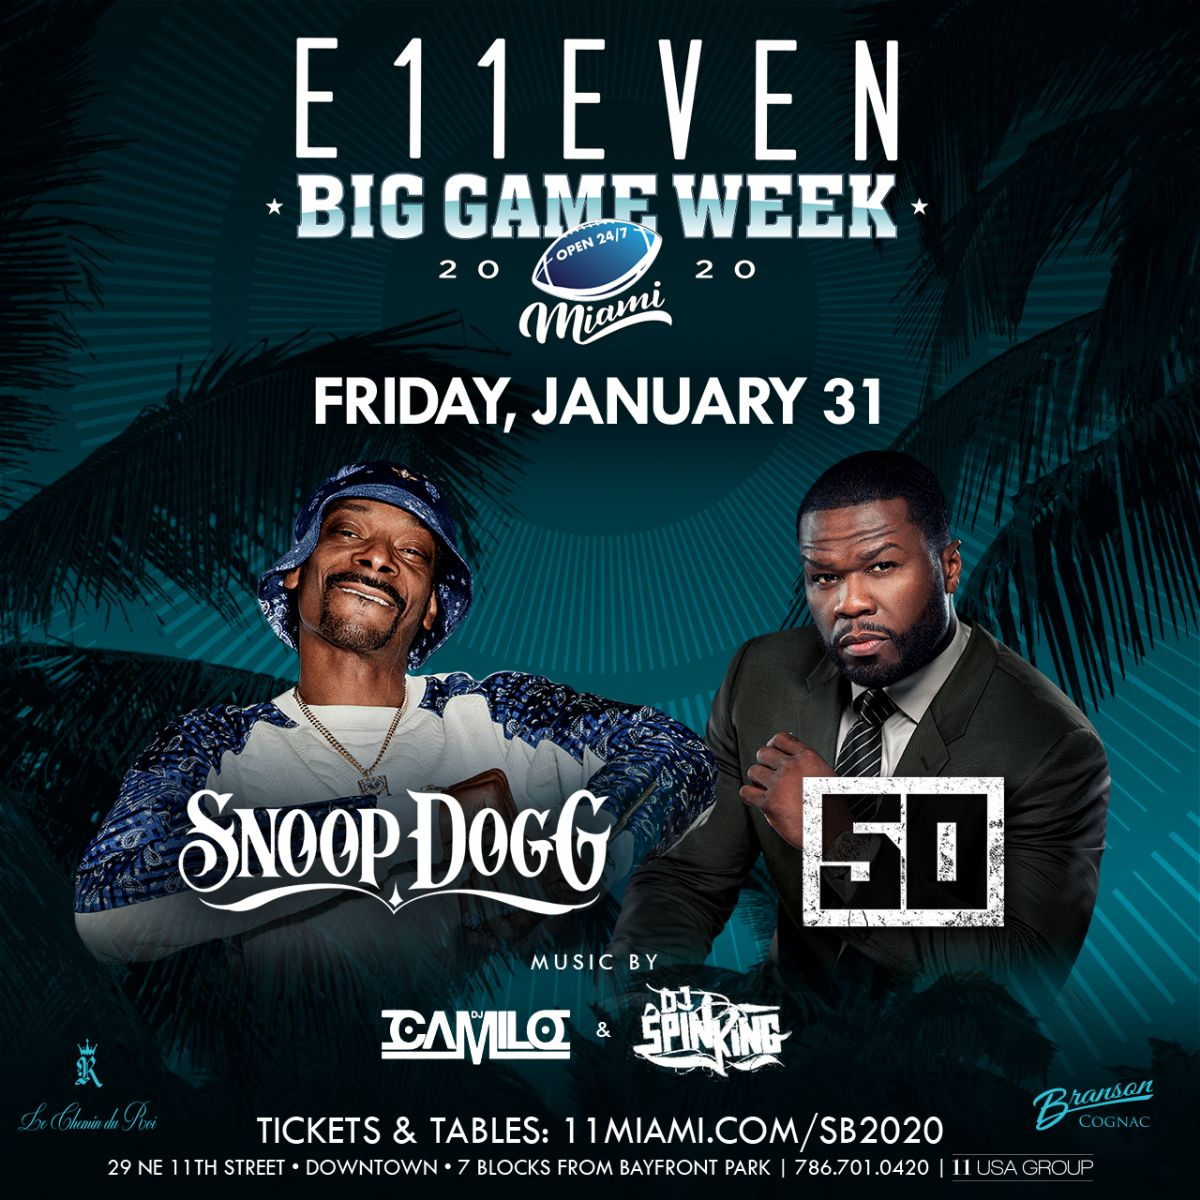 Big Game Week: Snoop Dogg & 50 Cent